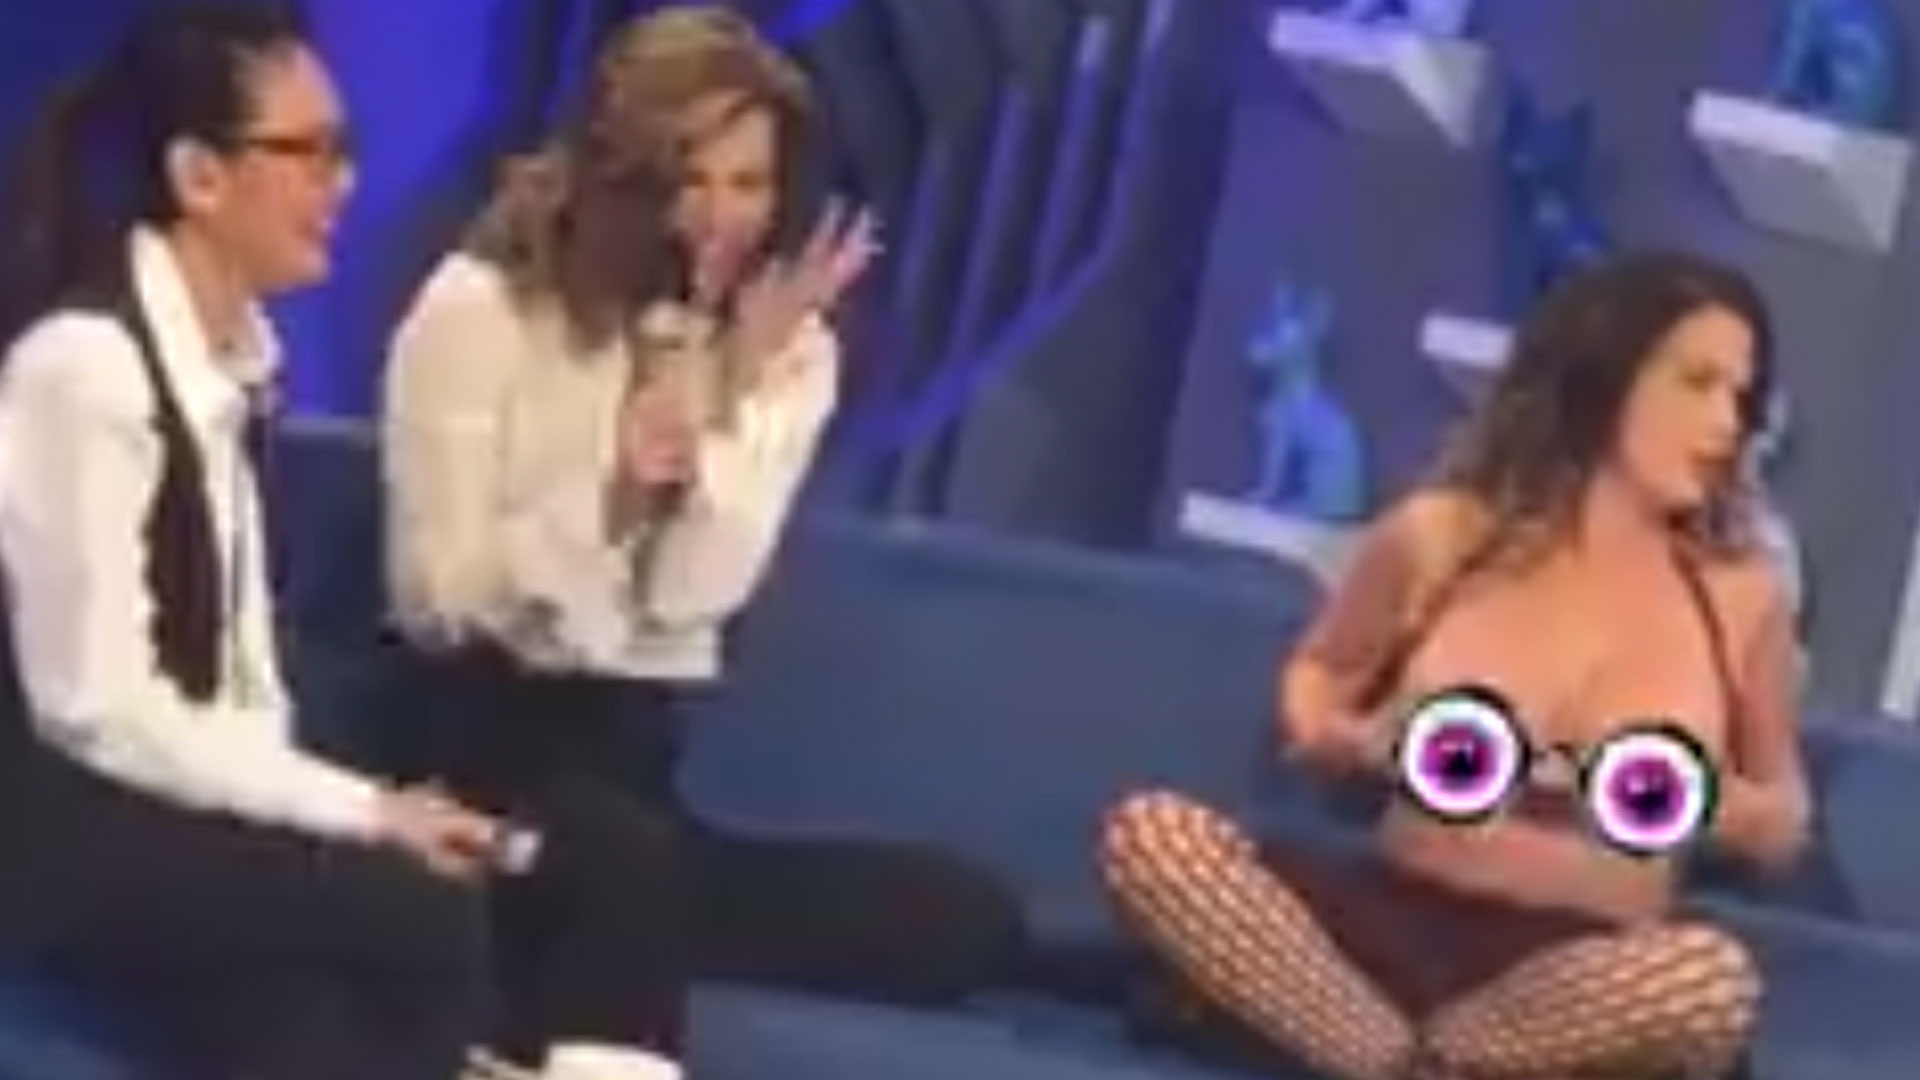 Niurka Marcos enseñó sus boobs en un programa de televisión (VIDEO ...